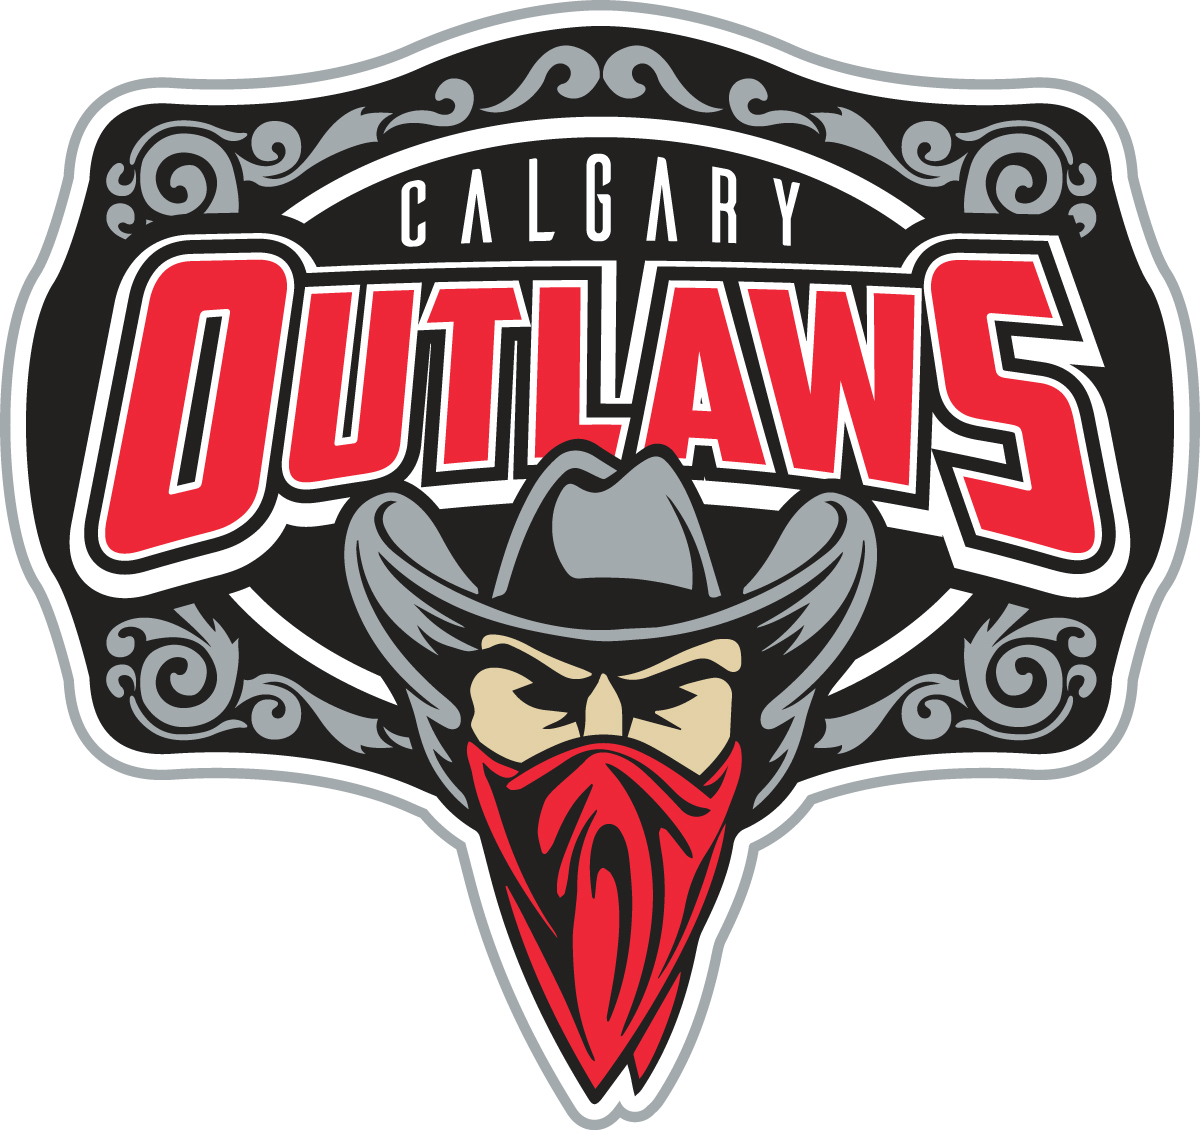 Calgary-Outlaws_FINAL.jpg (488 KB)